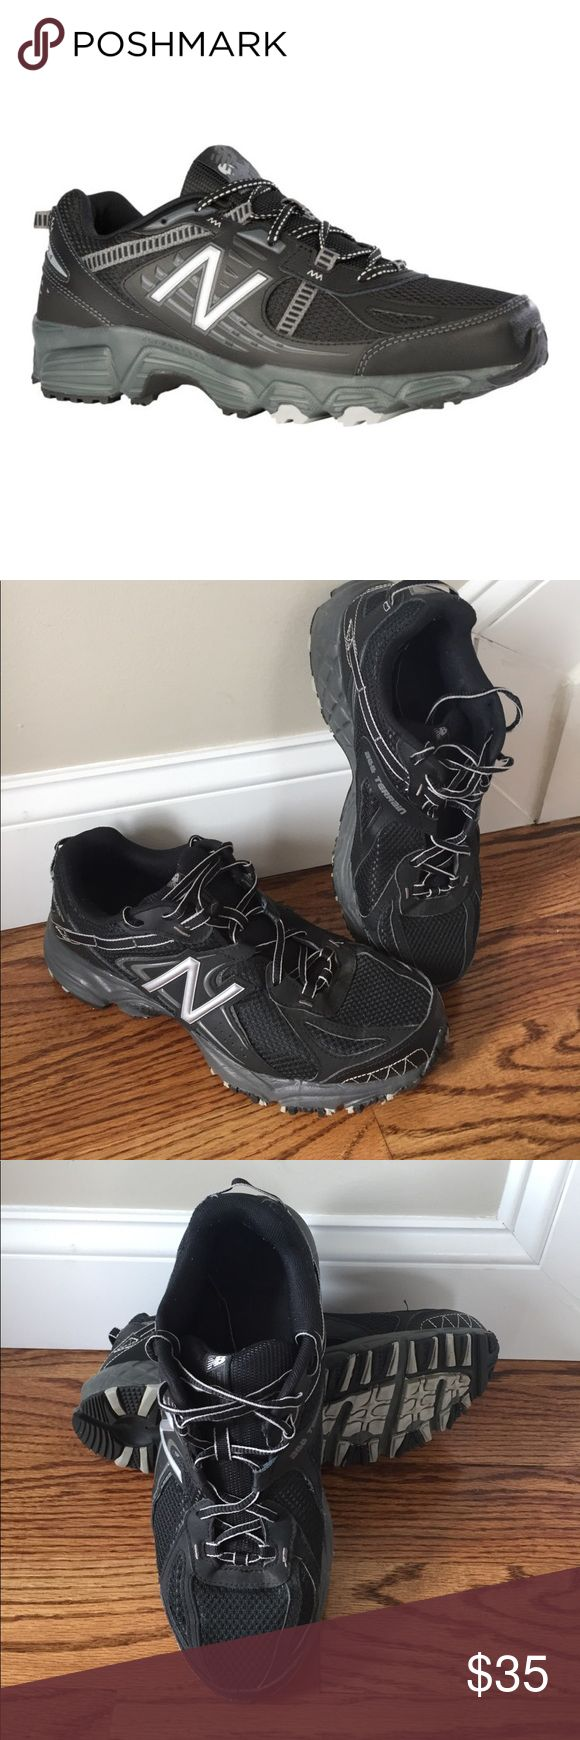 EUC! New Balance All Terrain Sneakers EUC! New Balance All Terrain Sneakers. Excellent arch support, stylish black and gray details. Barely worn. Size 10.5 New Balance Shoes Athletic Shoes